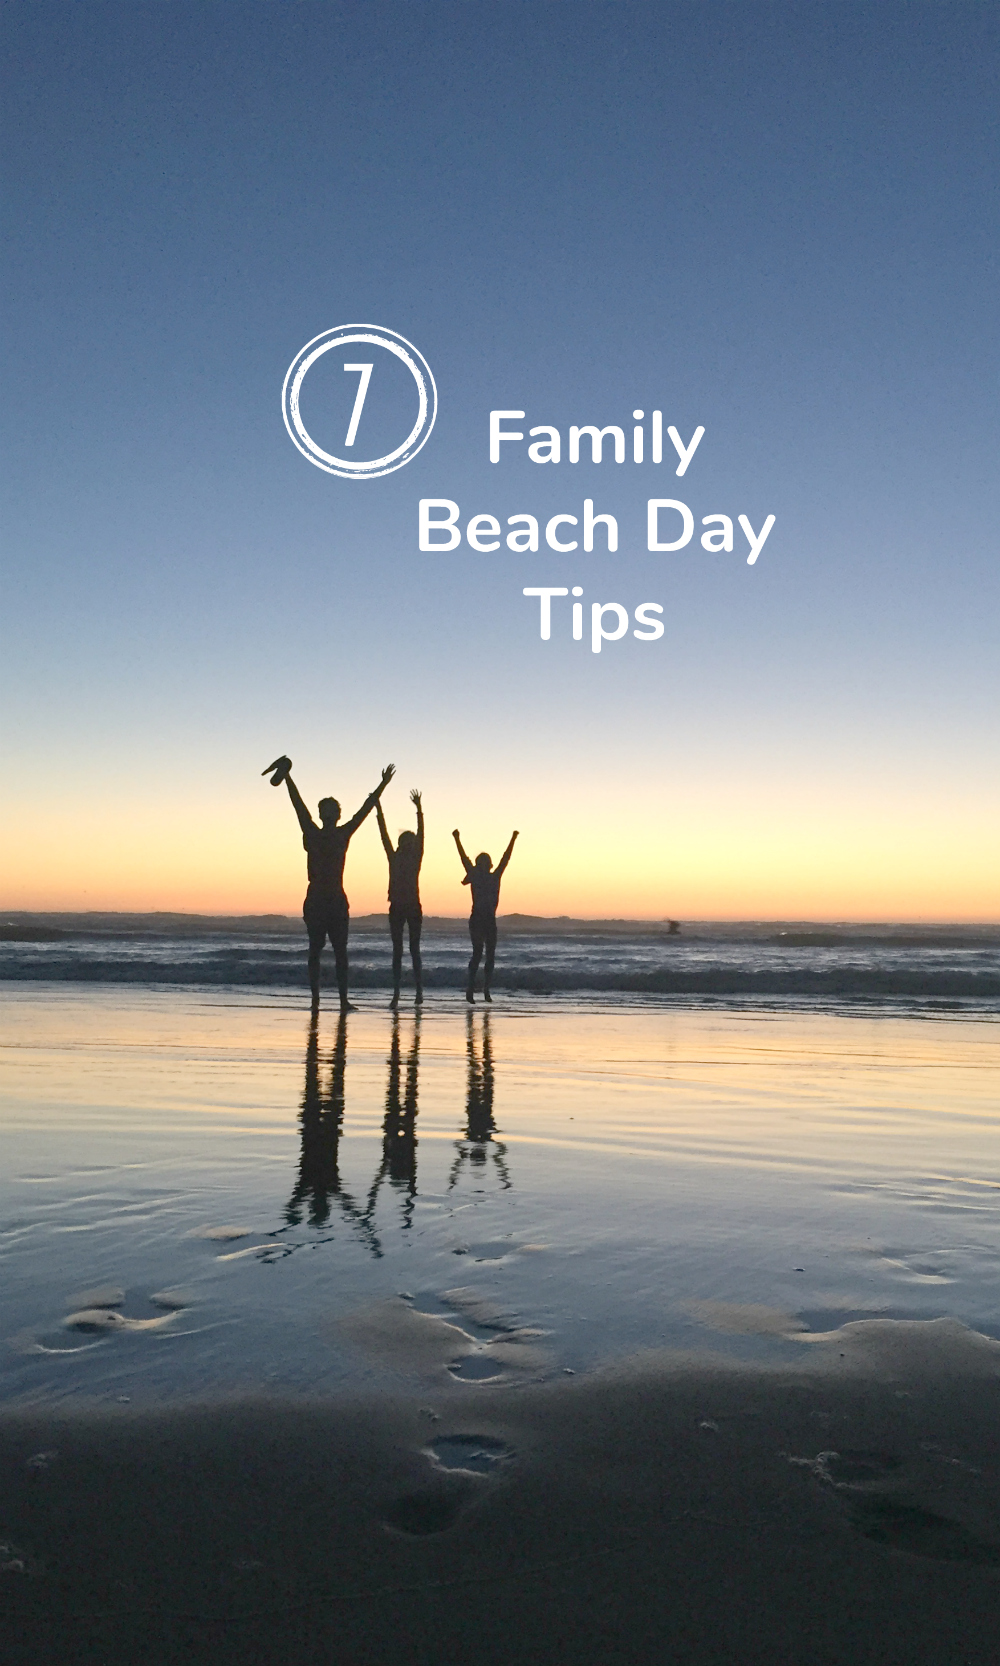 7 Family Beach Day Tips